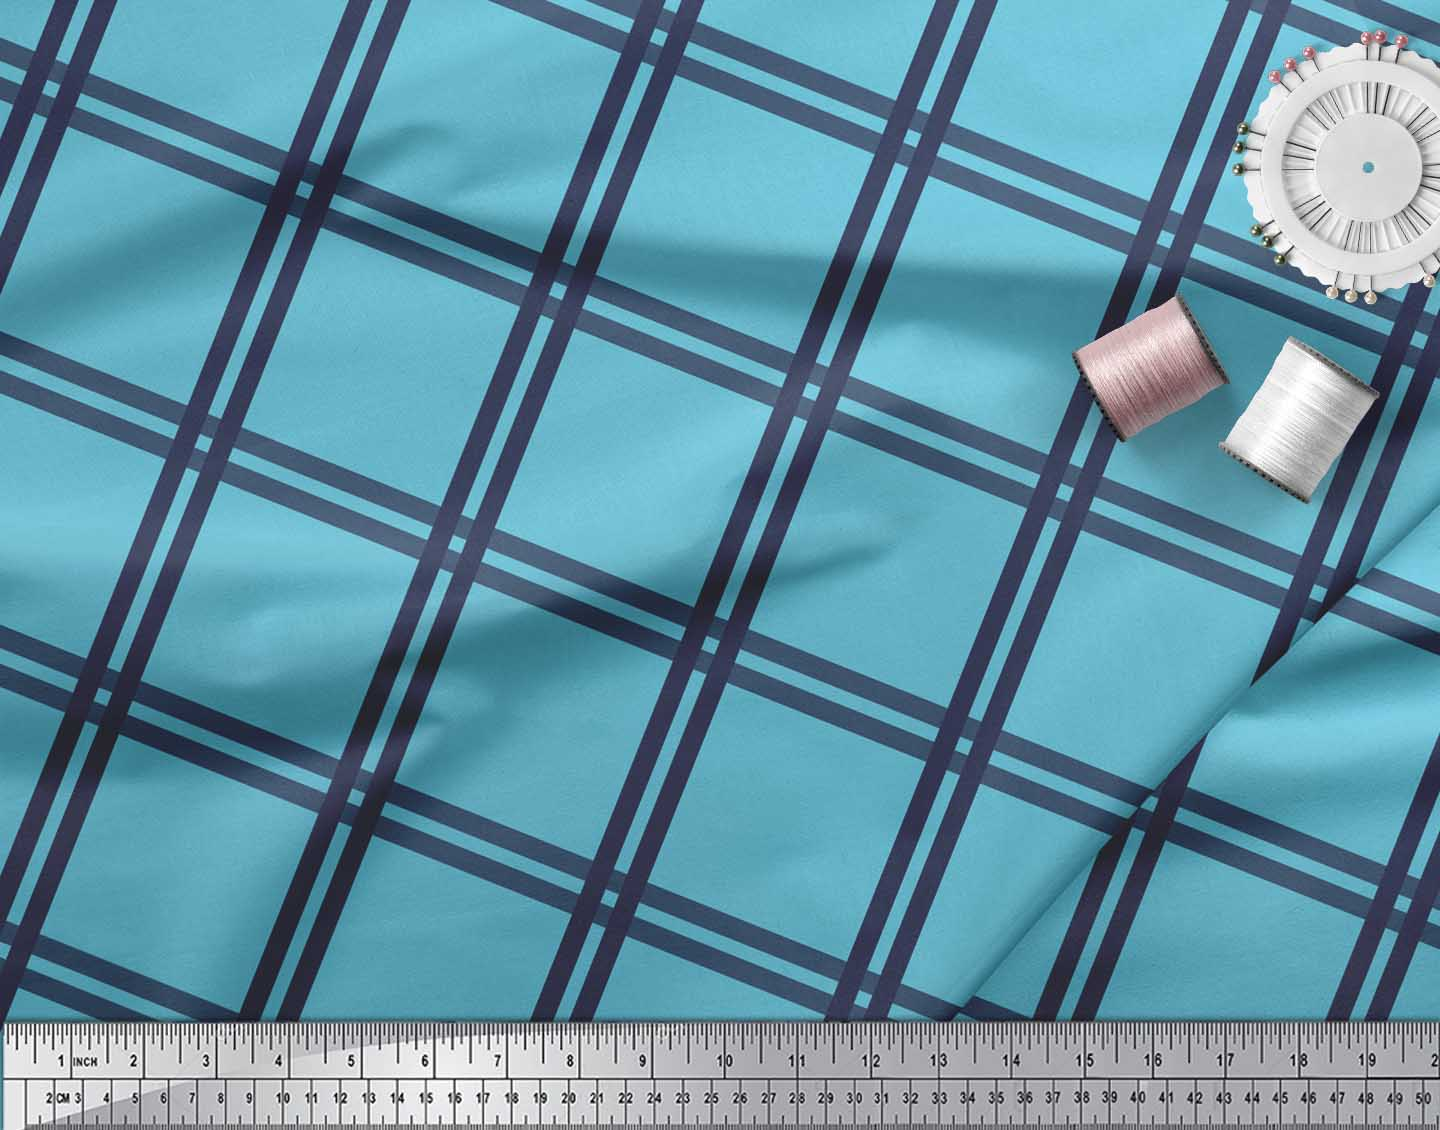 Soimoi-Blue-Cotton-Poplin-Fabric-Check-Check-Printed-Fabric-1-metre-IpY thumbnail 4